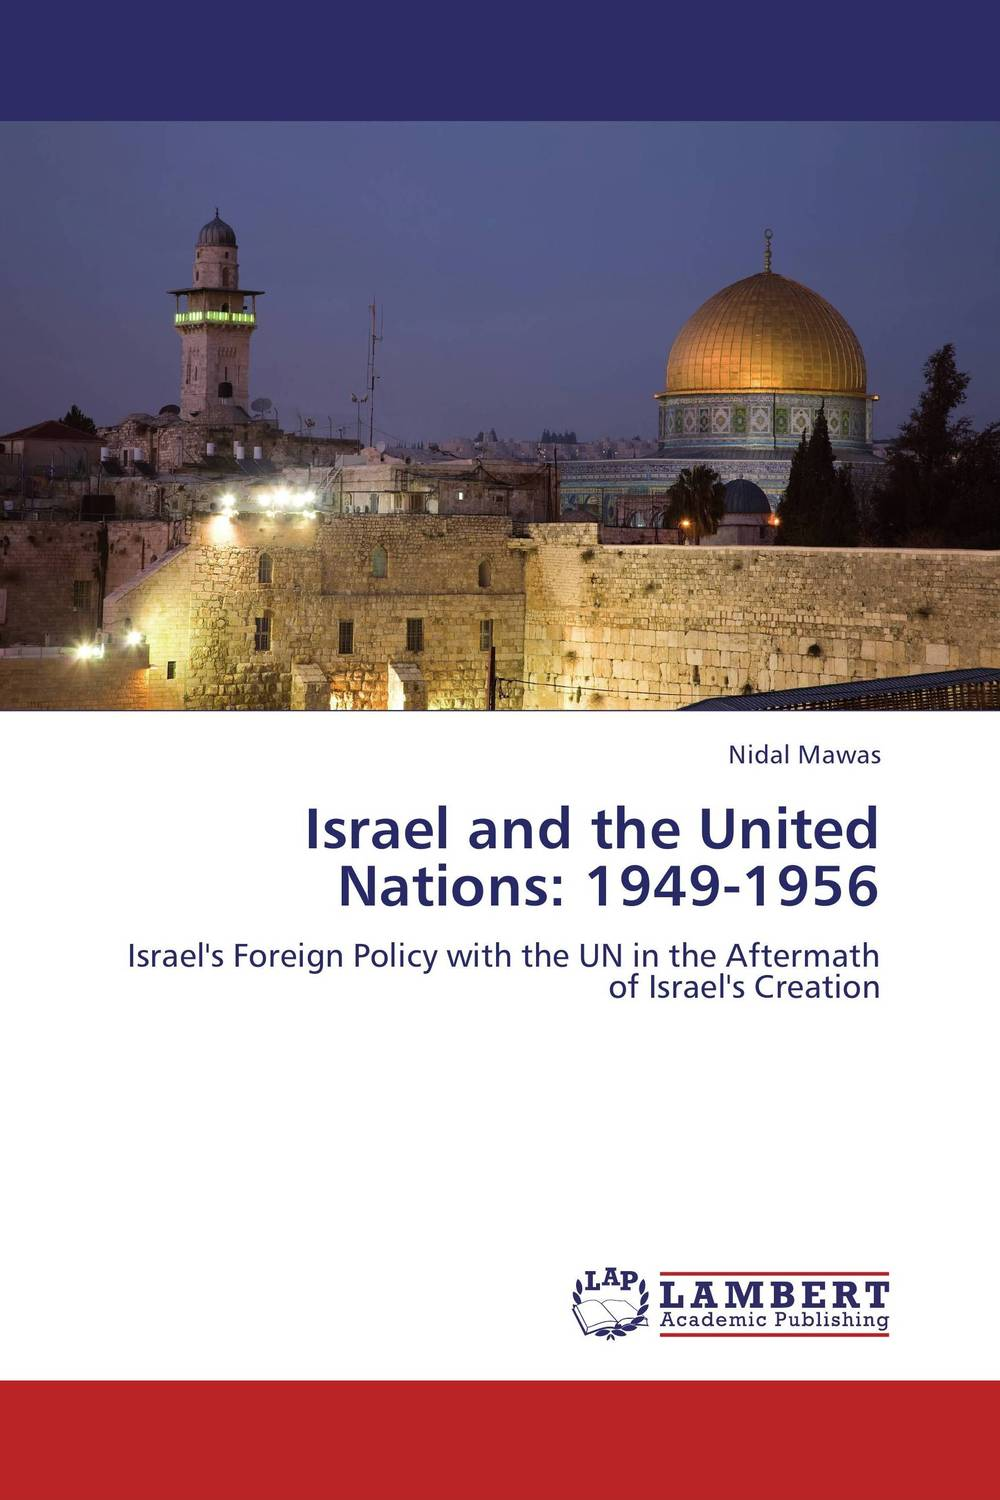 Israel and the United Nations: 1949-1956 psychiatric disorders in postpartum period